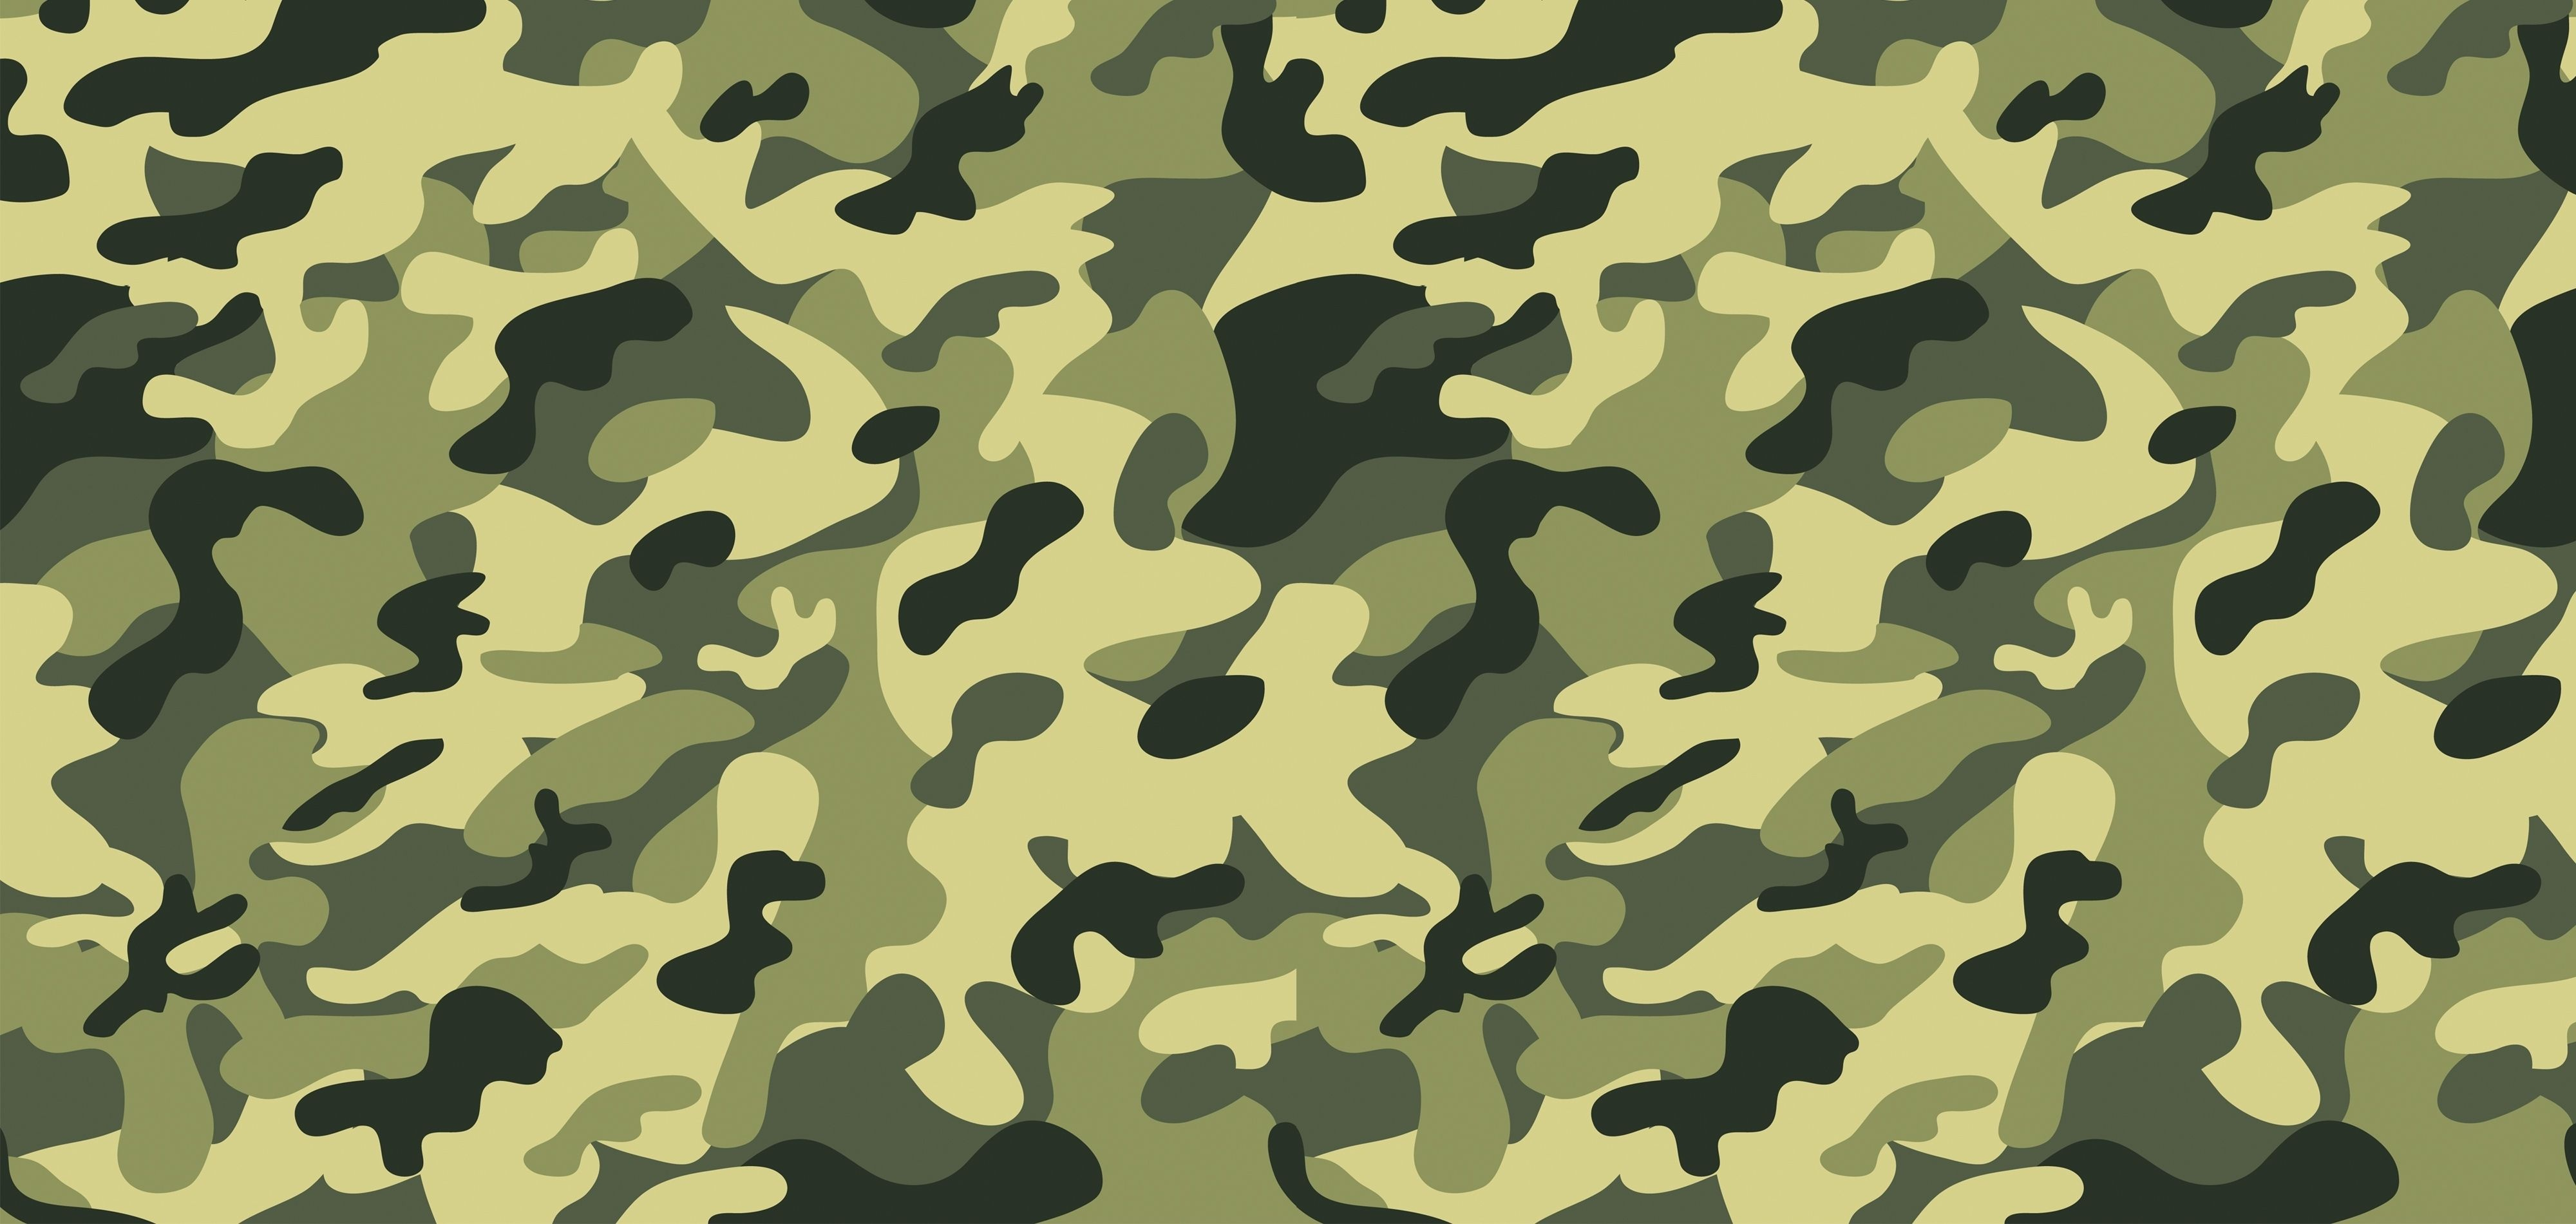 Free Printable Camo !!!!!!!!!! It Works Too! Download Original - Free Printable Camo Stencils